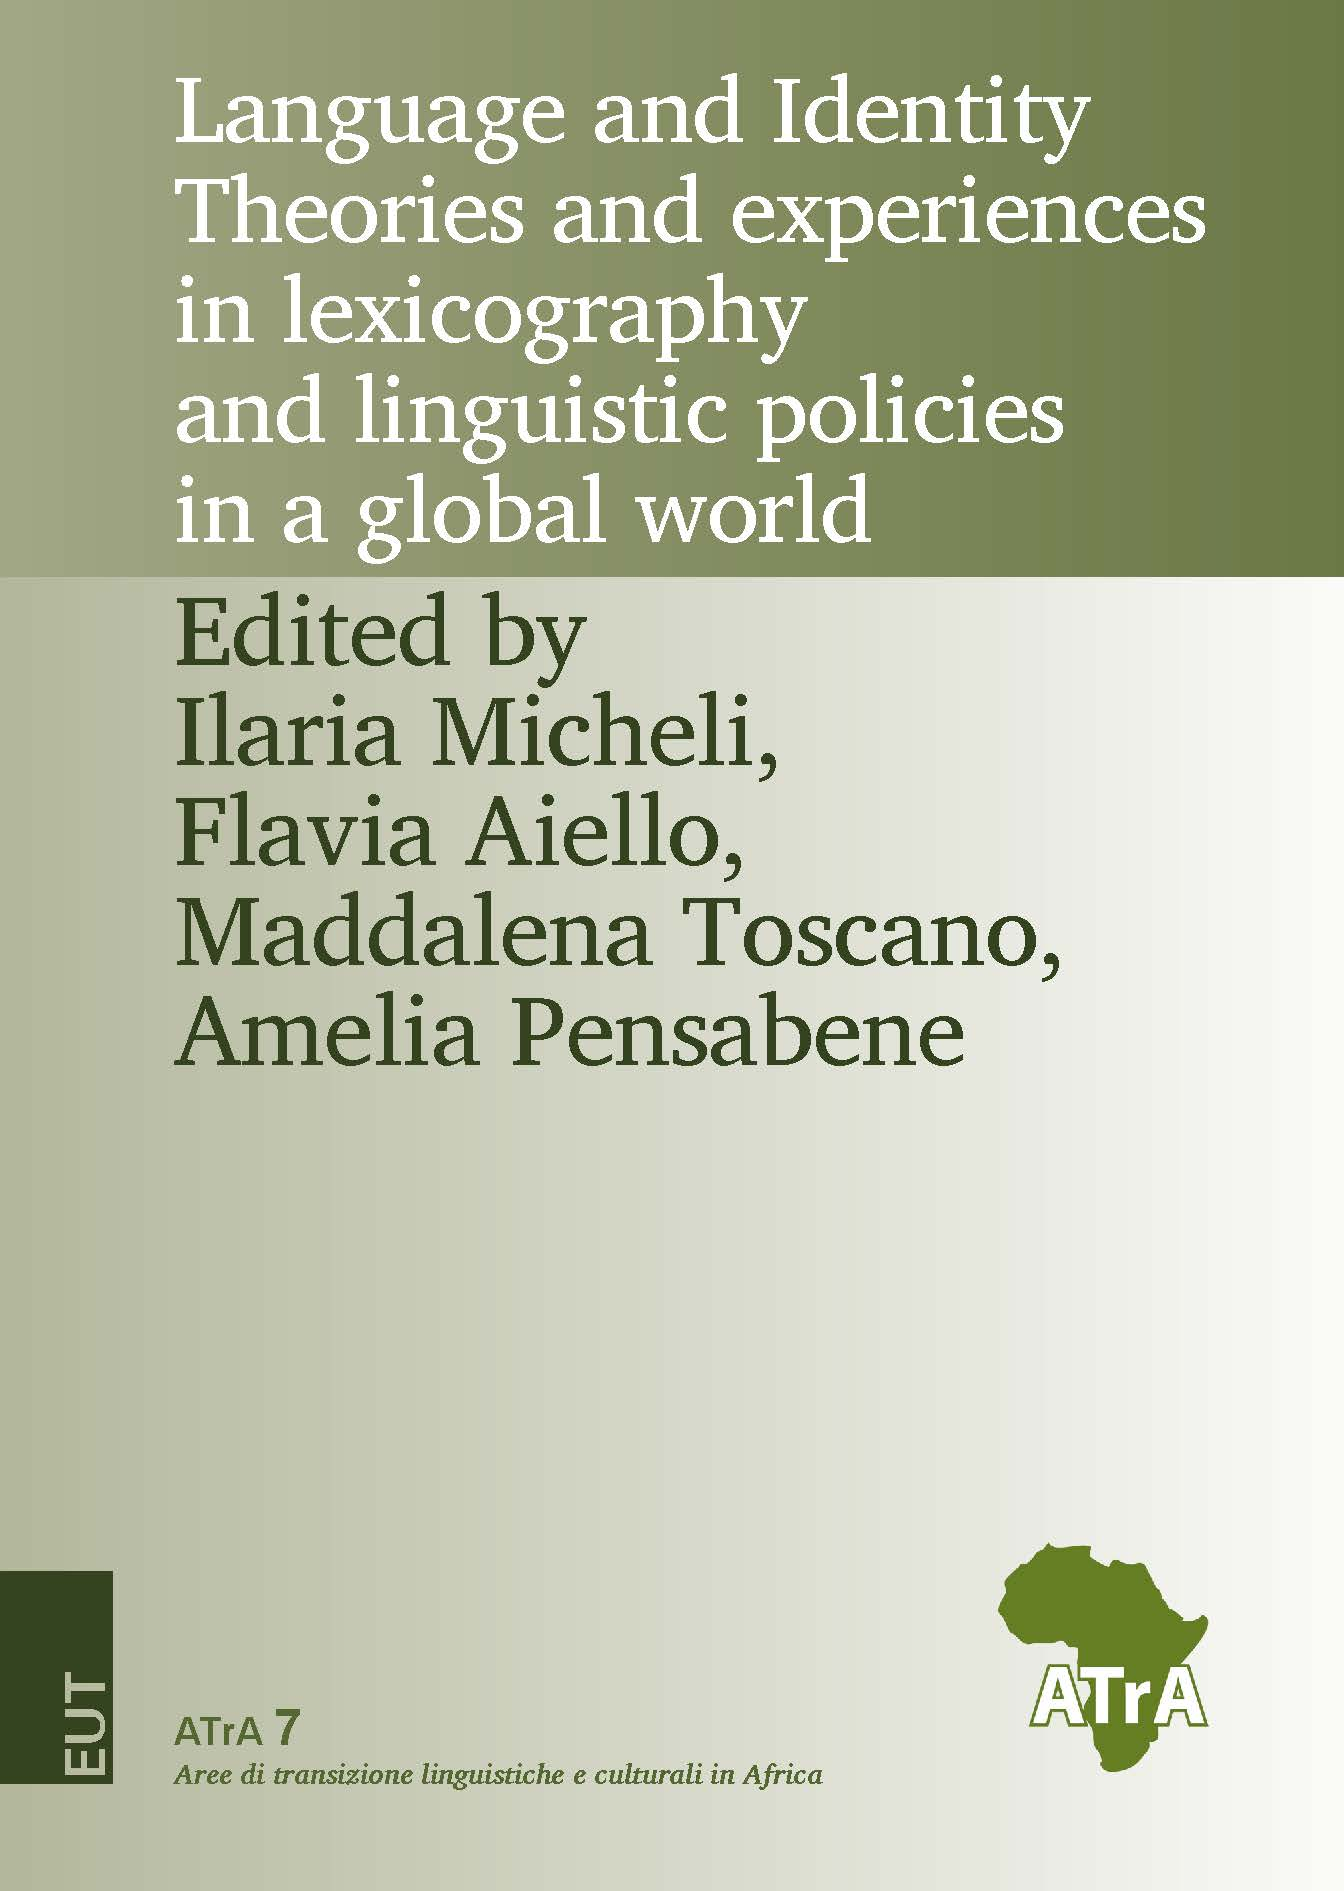 Language and Identity Theories and experiences in lexicography and linguistic policies in a global world